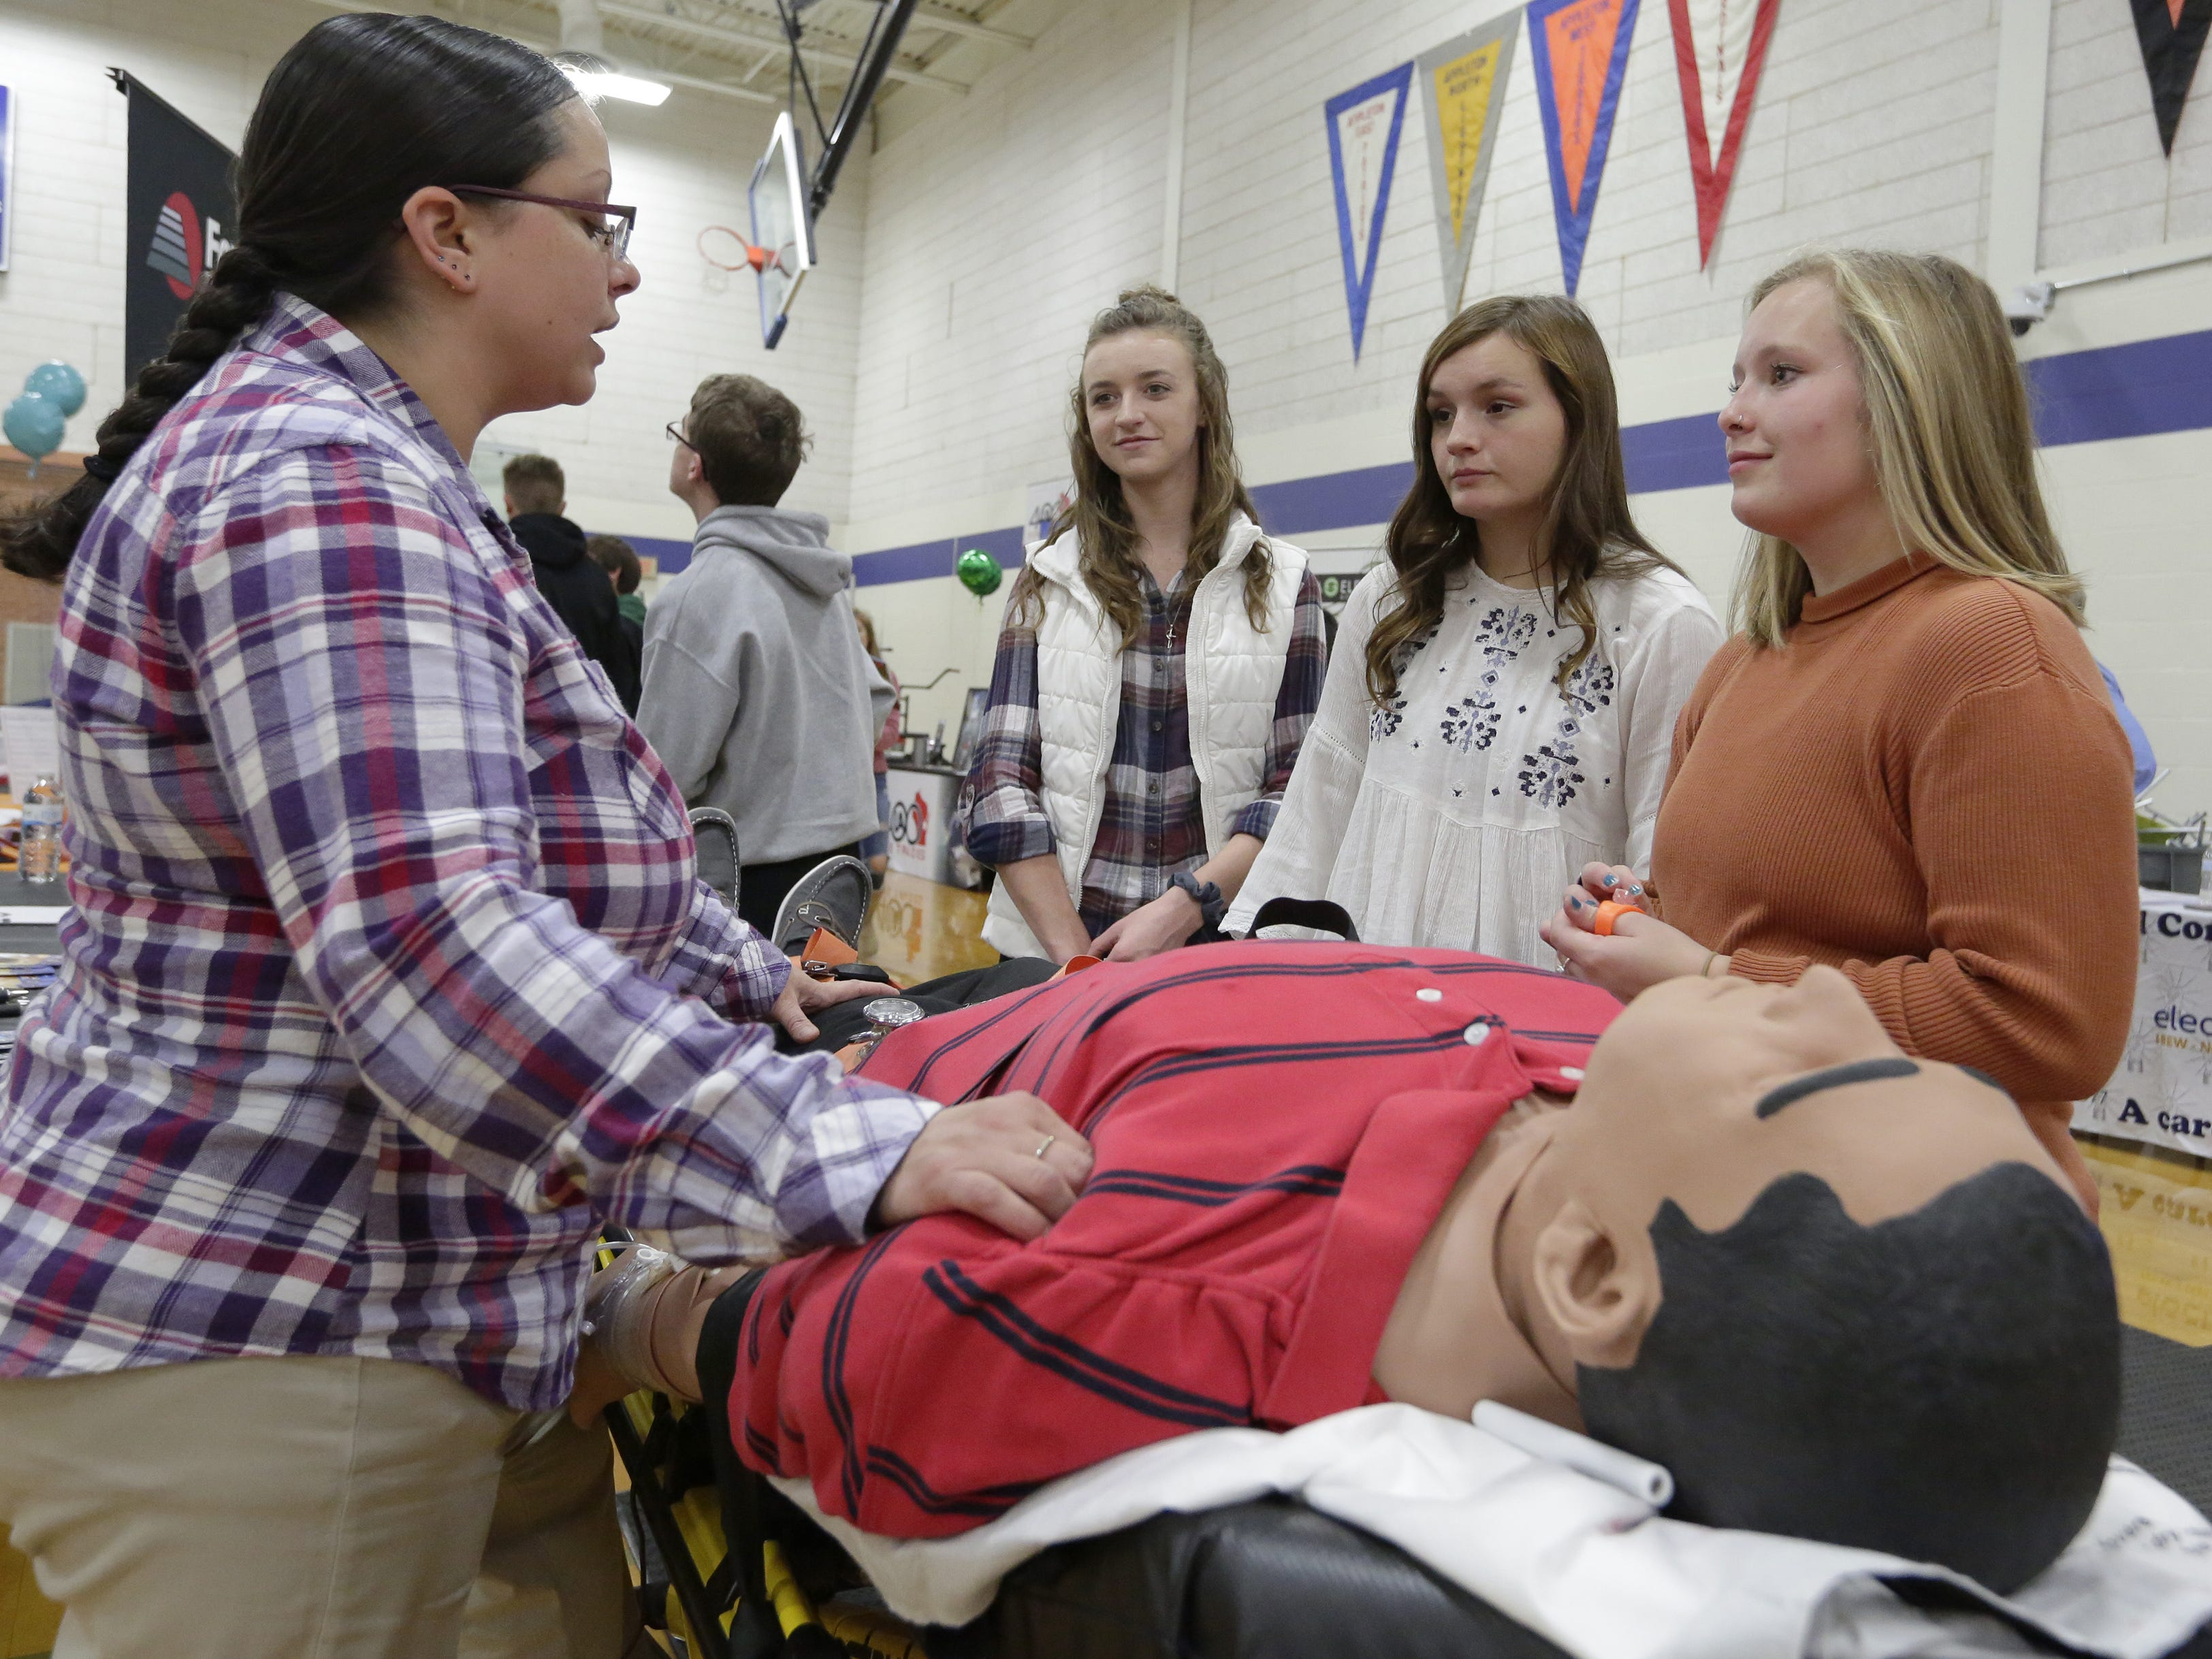 Jillian Camara Foss of Fox Valley Technical College talks to Danycka Millis, Sydney La Croix and Hanna Kramer about being a paramedic Tuesday, Oct. 23, 2018, during the Oshkosh Chamber of Commerce's Career Exploration Fair at Oshkosh West High School. About 1,000 students from Oshkosh and Omro middle and high schools participated in this year's expanded fair, thanks to a $5,000 grant from AT&T.